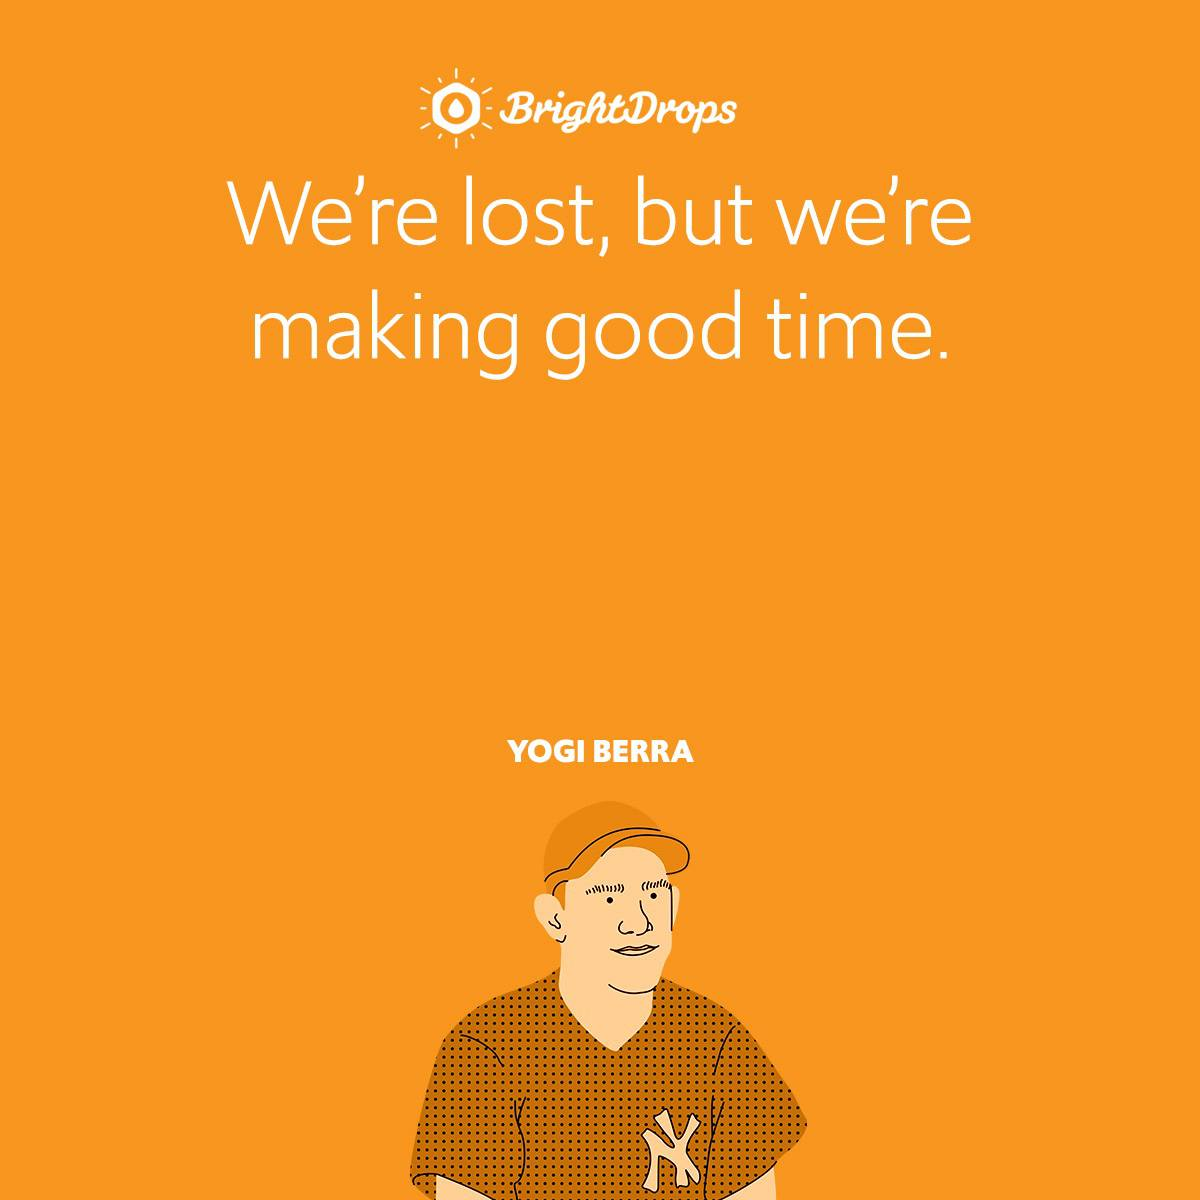 We're lost, but we're making good time.